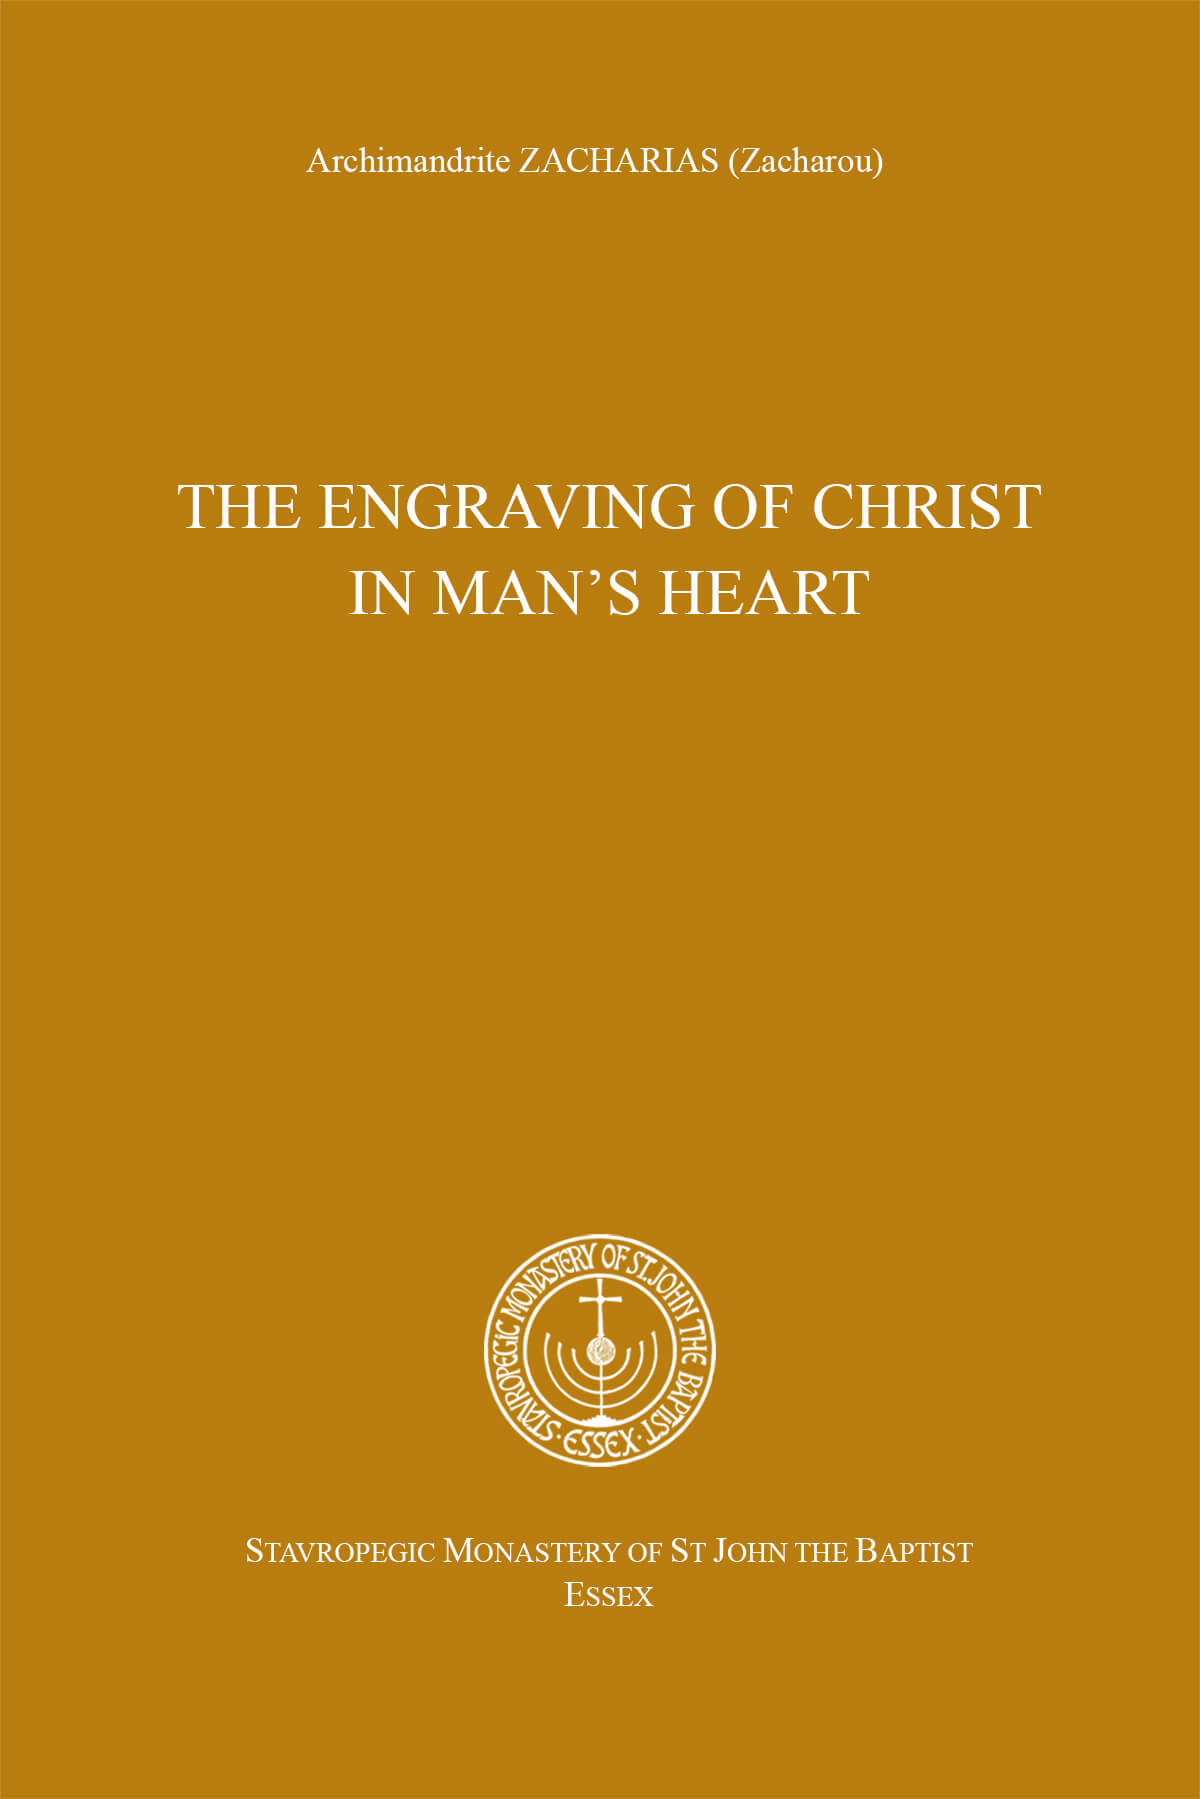 The engraving of Christ in mans heart_cover-epub